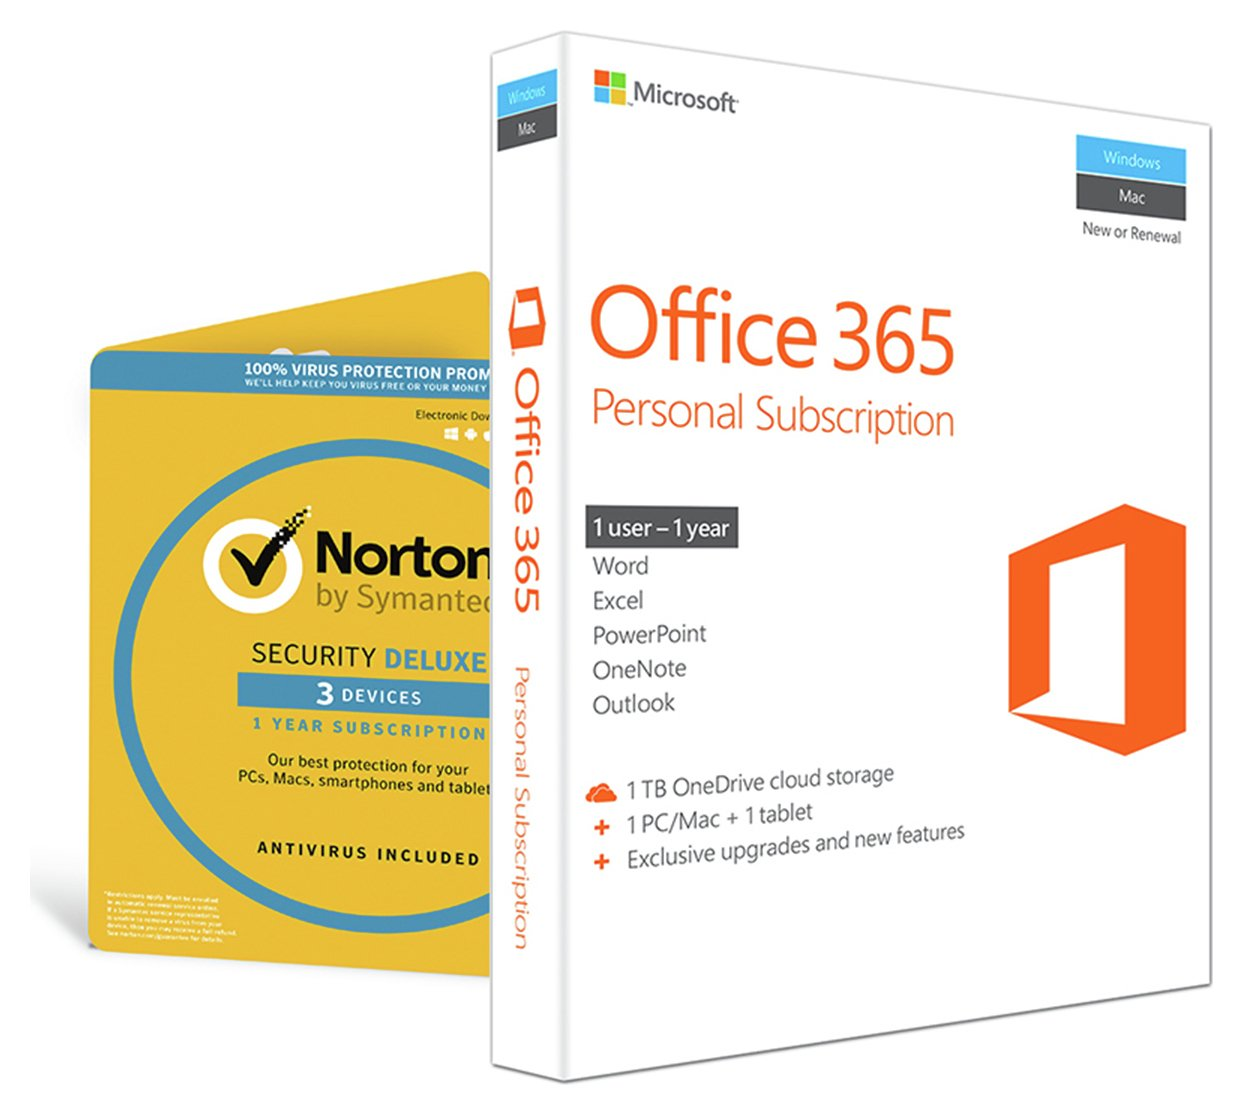 Microsoft Microsoft - Office 365 Personal and Norton - Internet Security